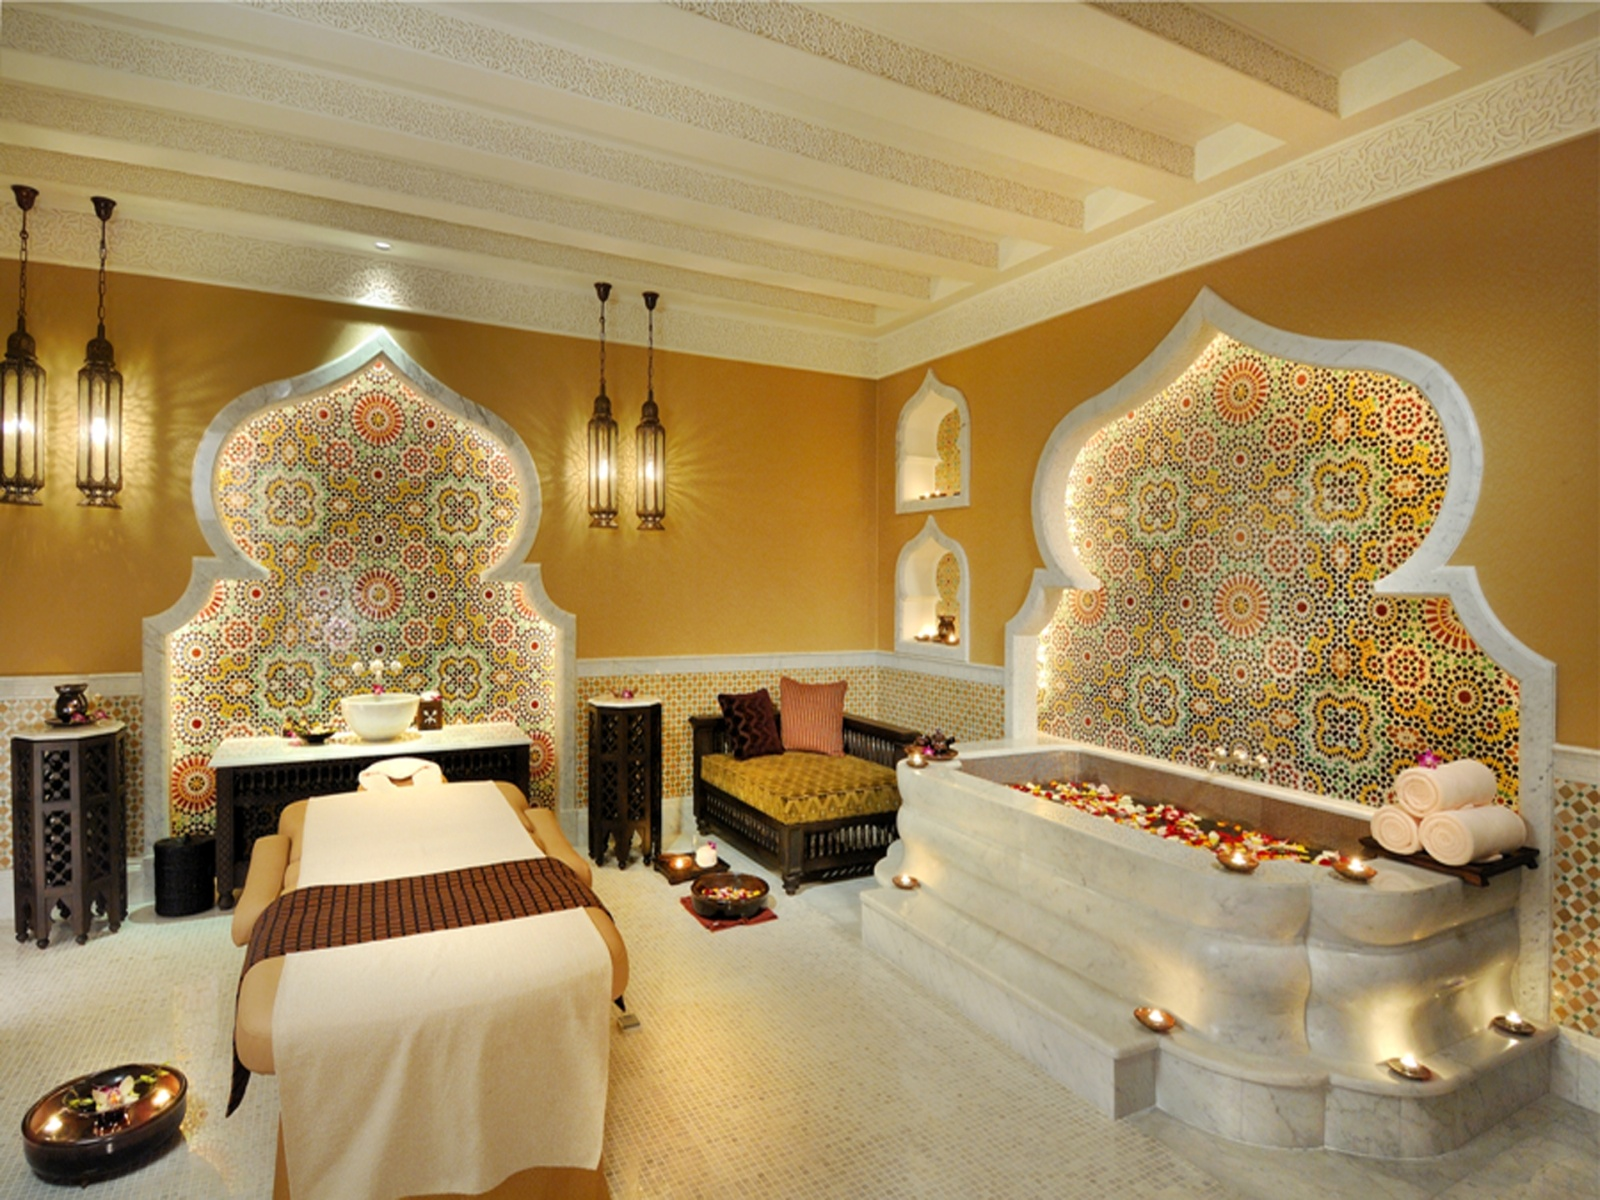 Most expensive hotel emirates palace abu dhabi bon vita for Most expensive suite in dubai